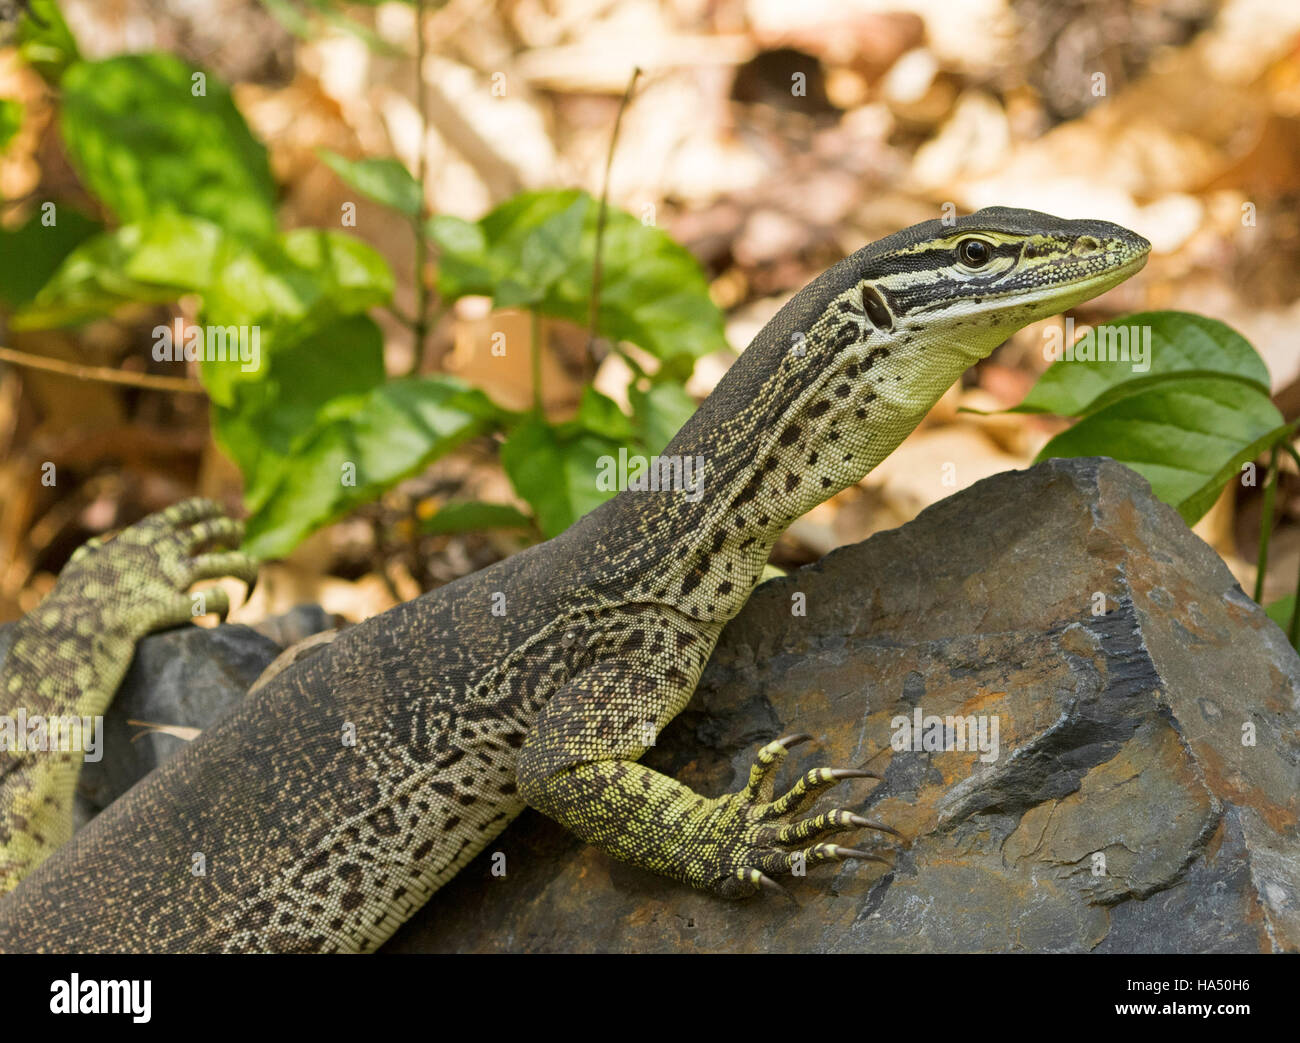 Scary Claws Stock Photos & Scary Claws Stock Images - Alamy